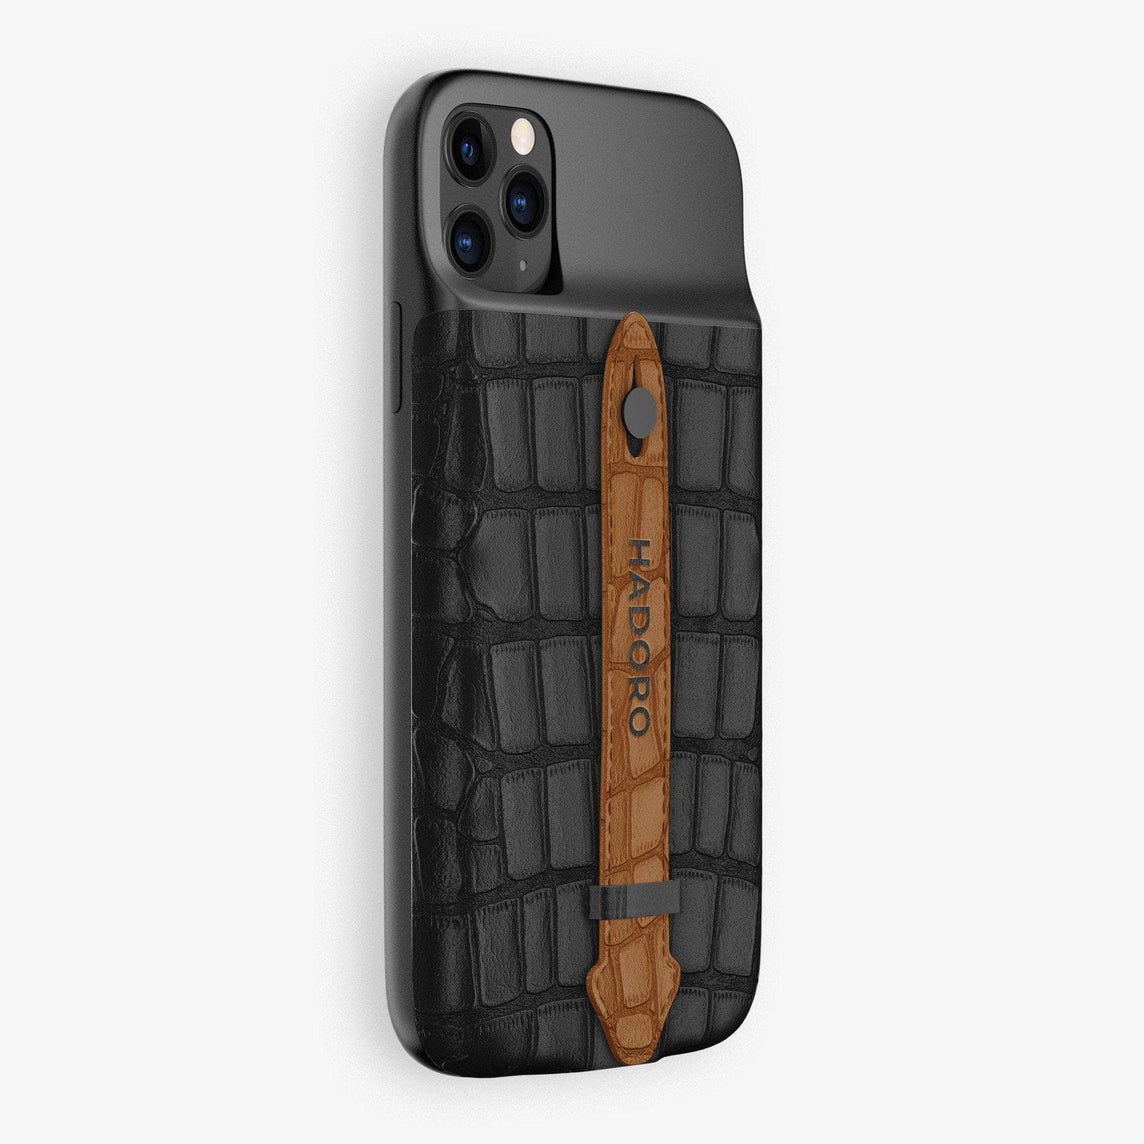 Alligator Battery Finger Case for iPhone 11 Pro Max | Black/Cognac - Black